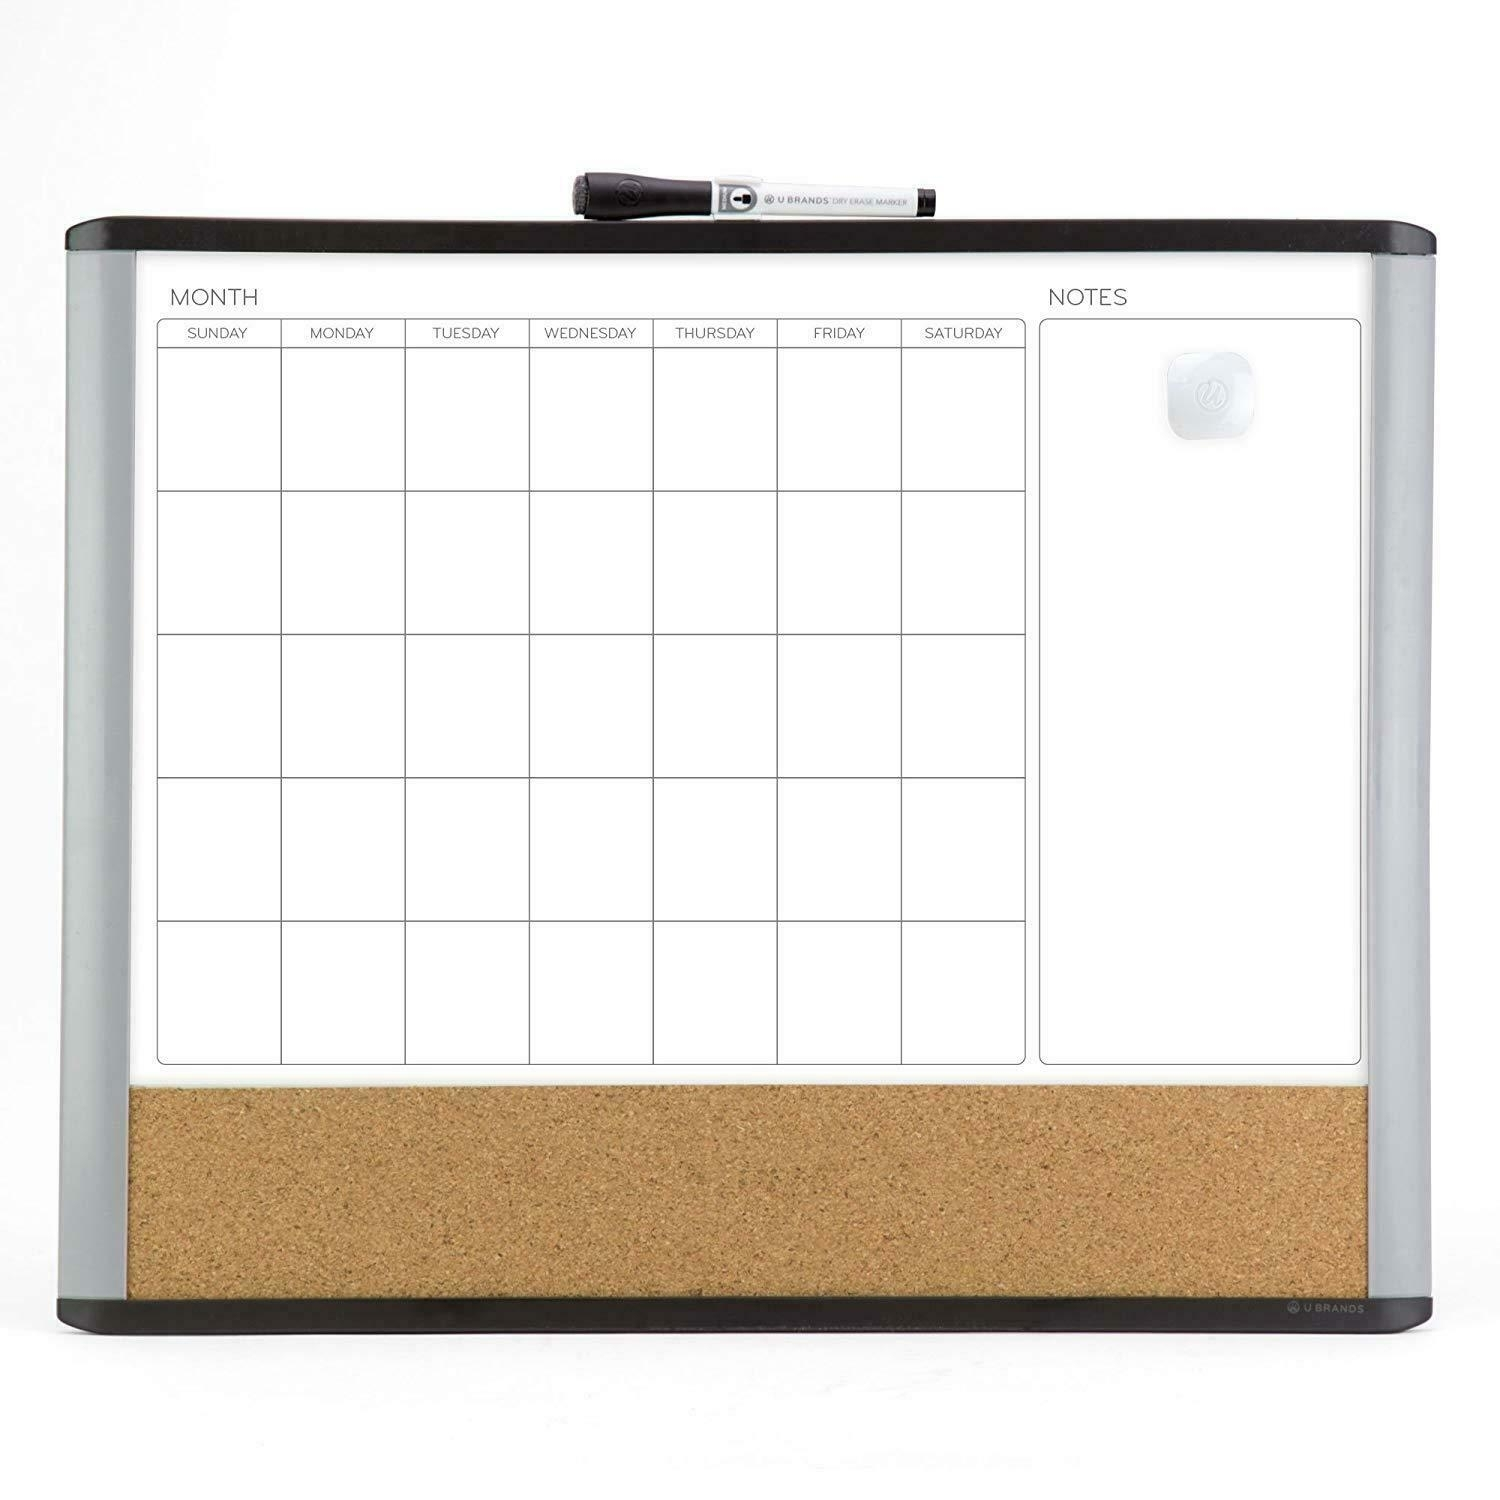 New Cork Board Wall Monthly Time Planner Whiteboard Magnetic Dry